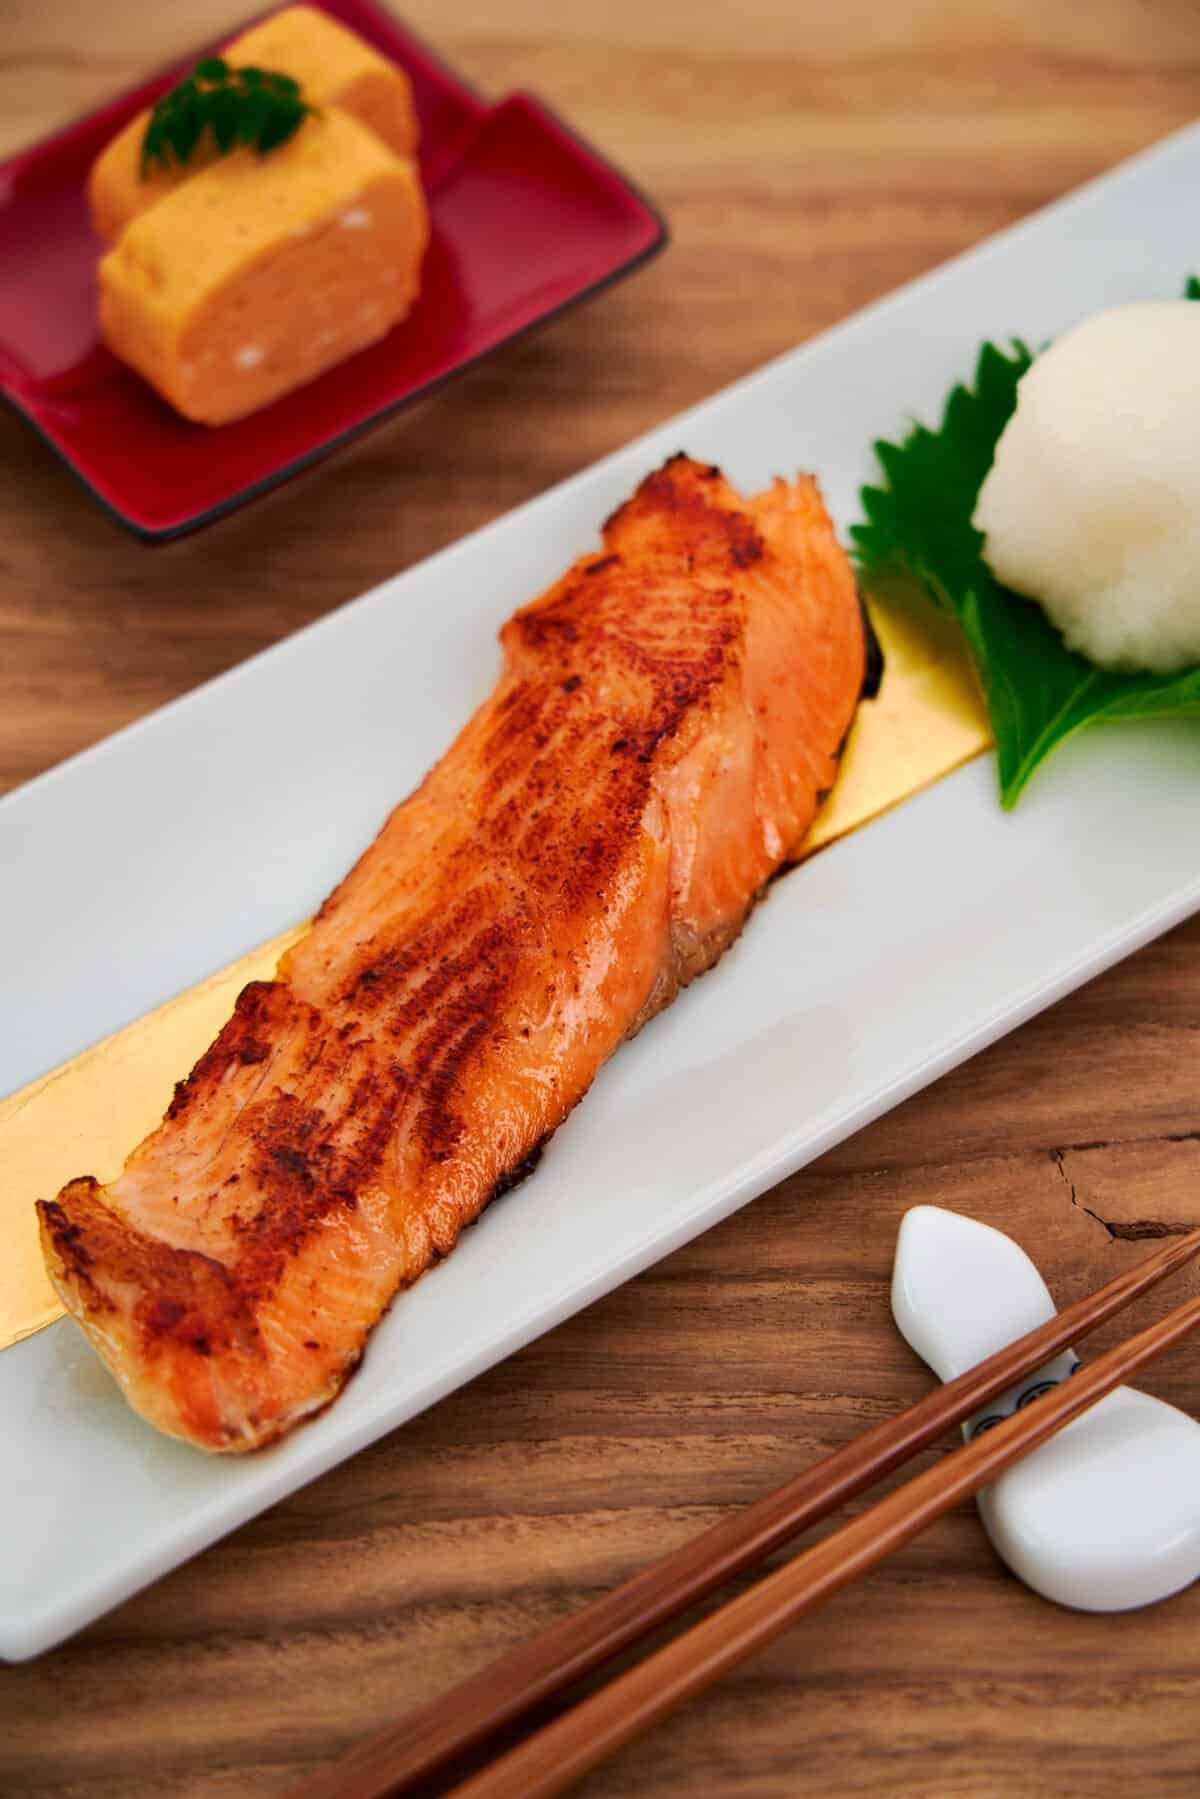 Grilled salt-cured salmon is a staple of traditional japanese breakfasts. This easy grilled salmon recipe includes just 3 ingredients.